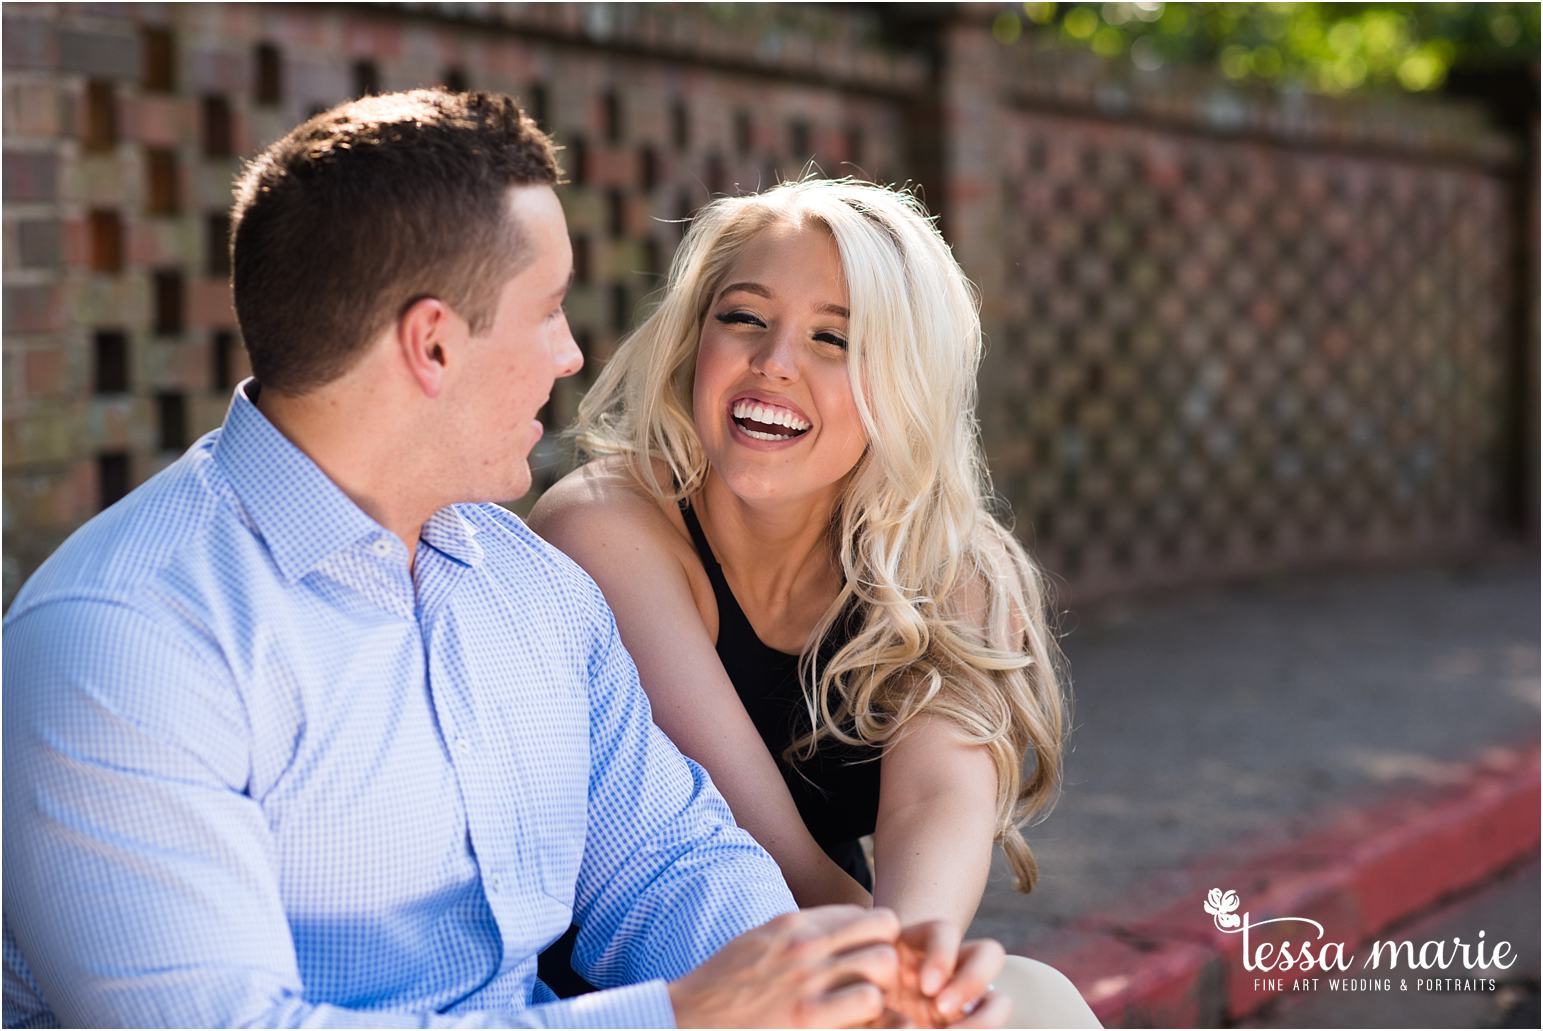 athens_ga_uga_university_of_georgia_engagement_pictures_north_campus_tessa_marie_weddings_athens_wedding_photographer_0030